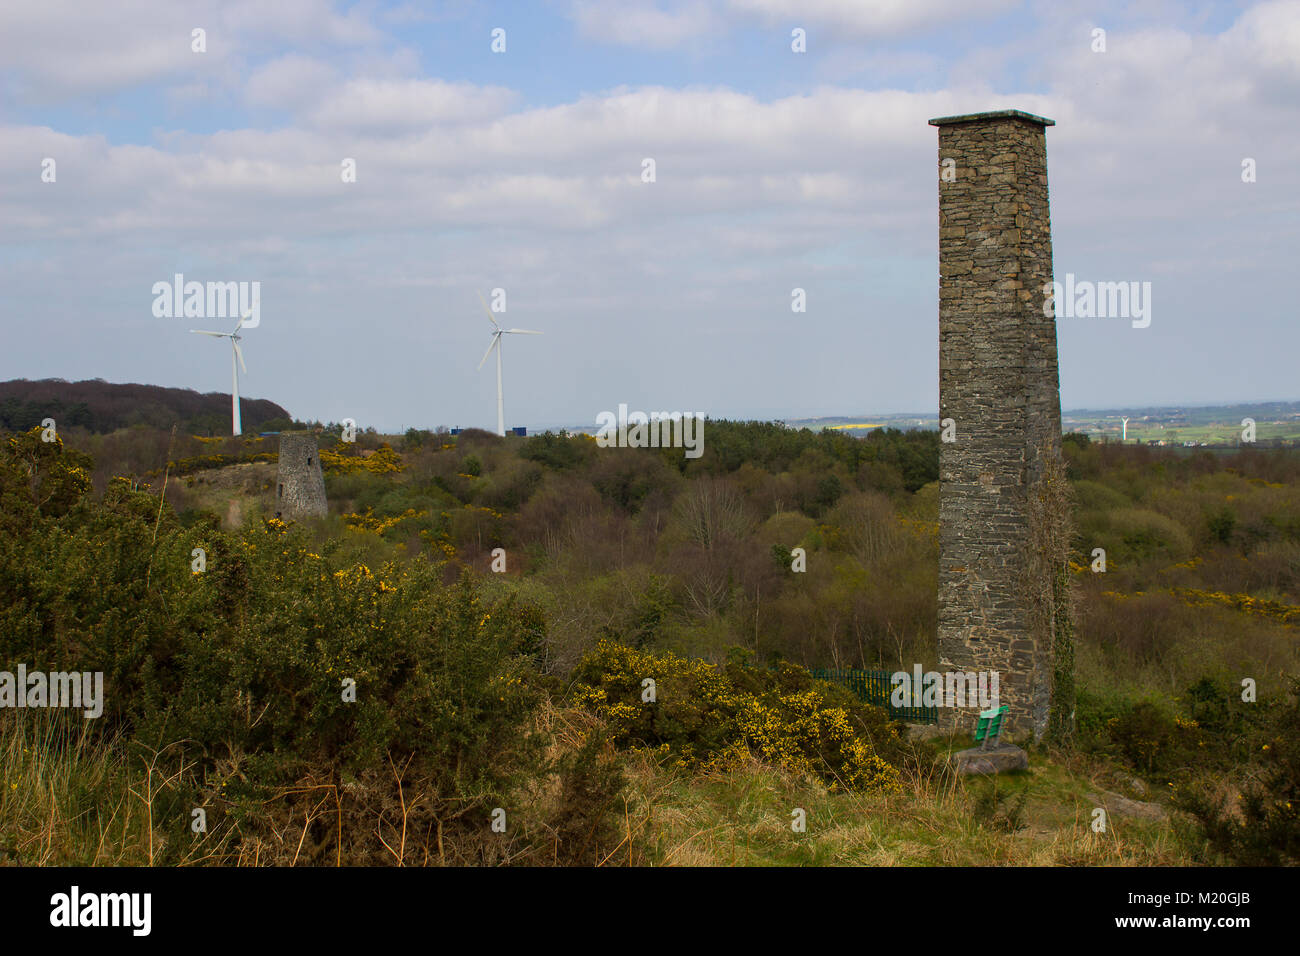 An old industrial chimney stack with modern wind turbines in the background at the old lead mines site at Whitespots Stock Photo